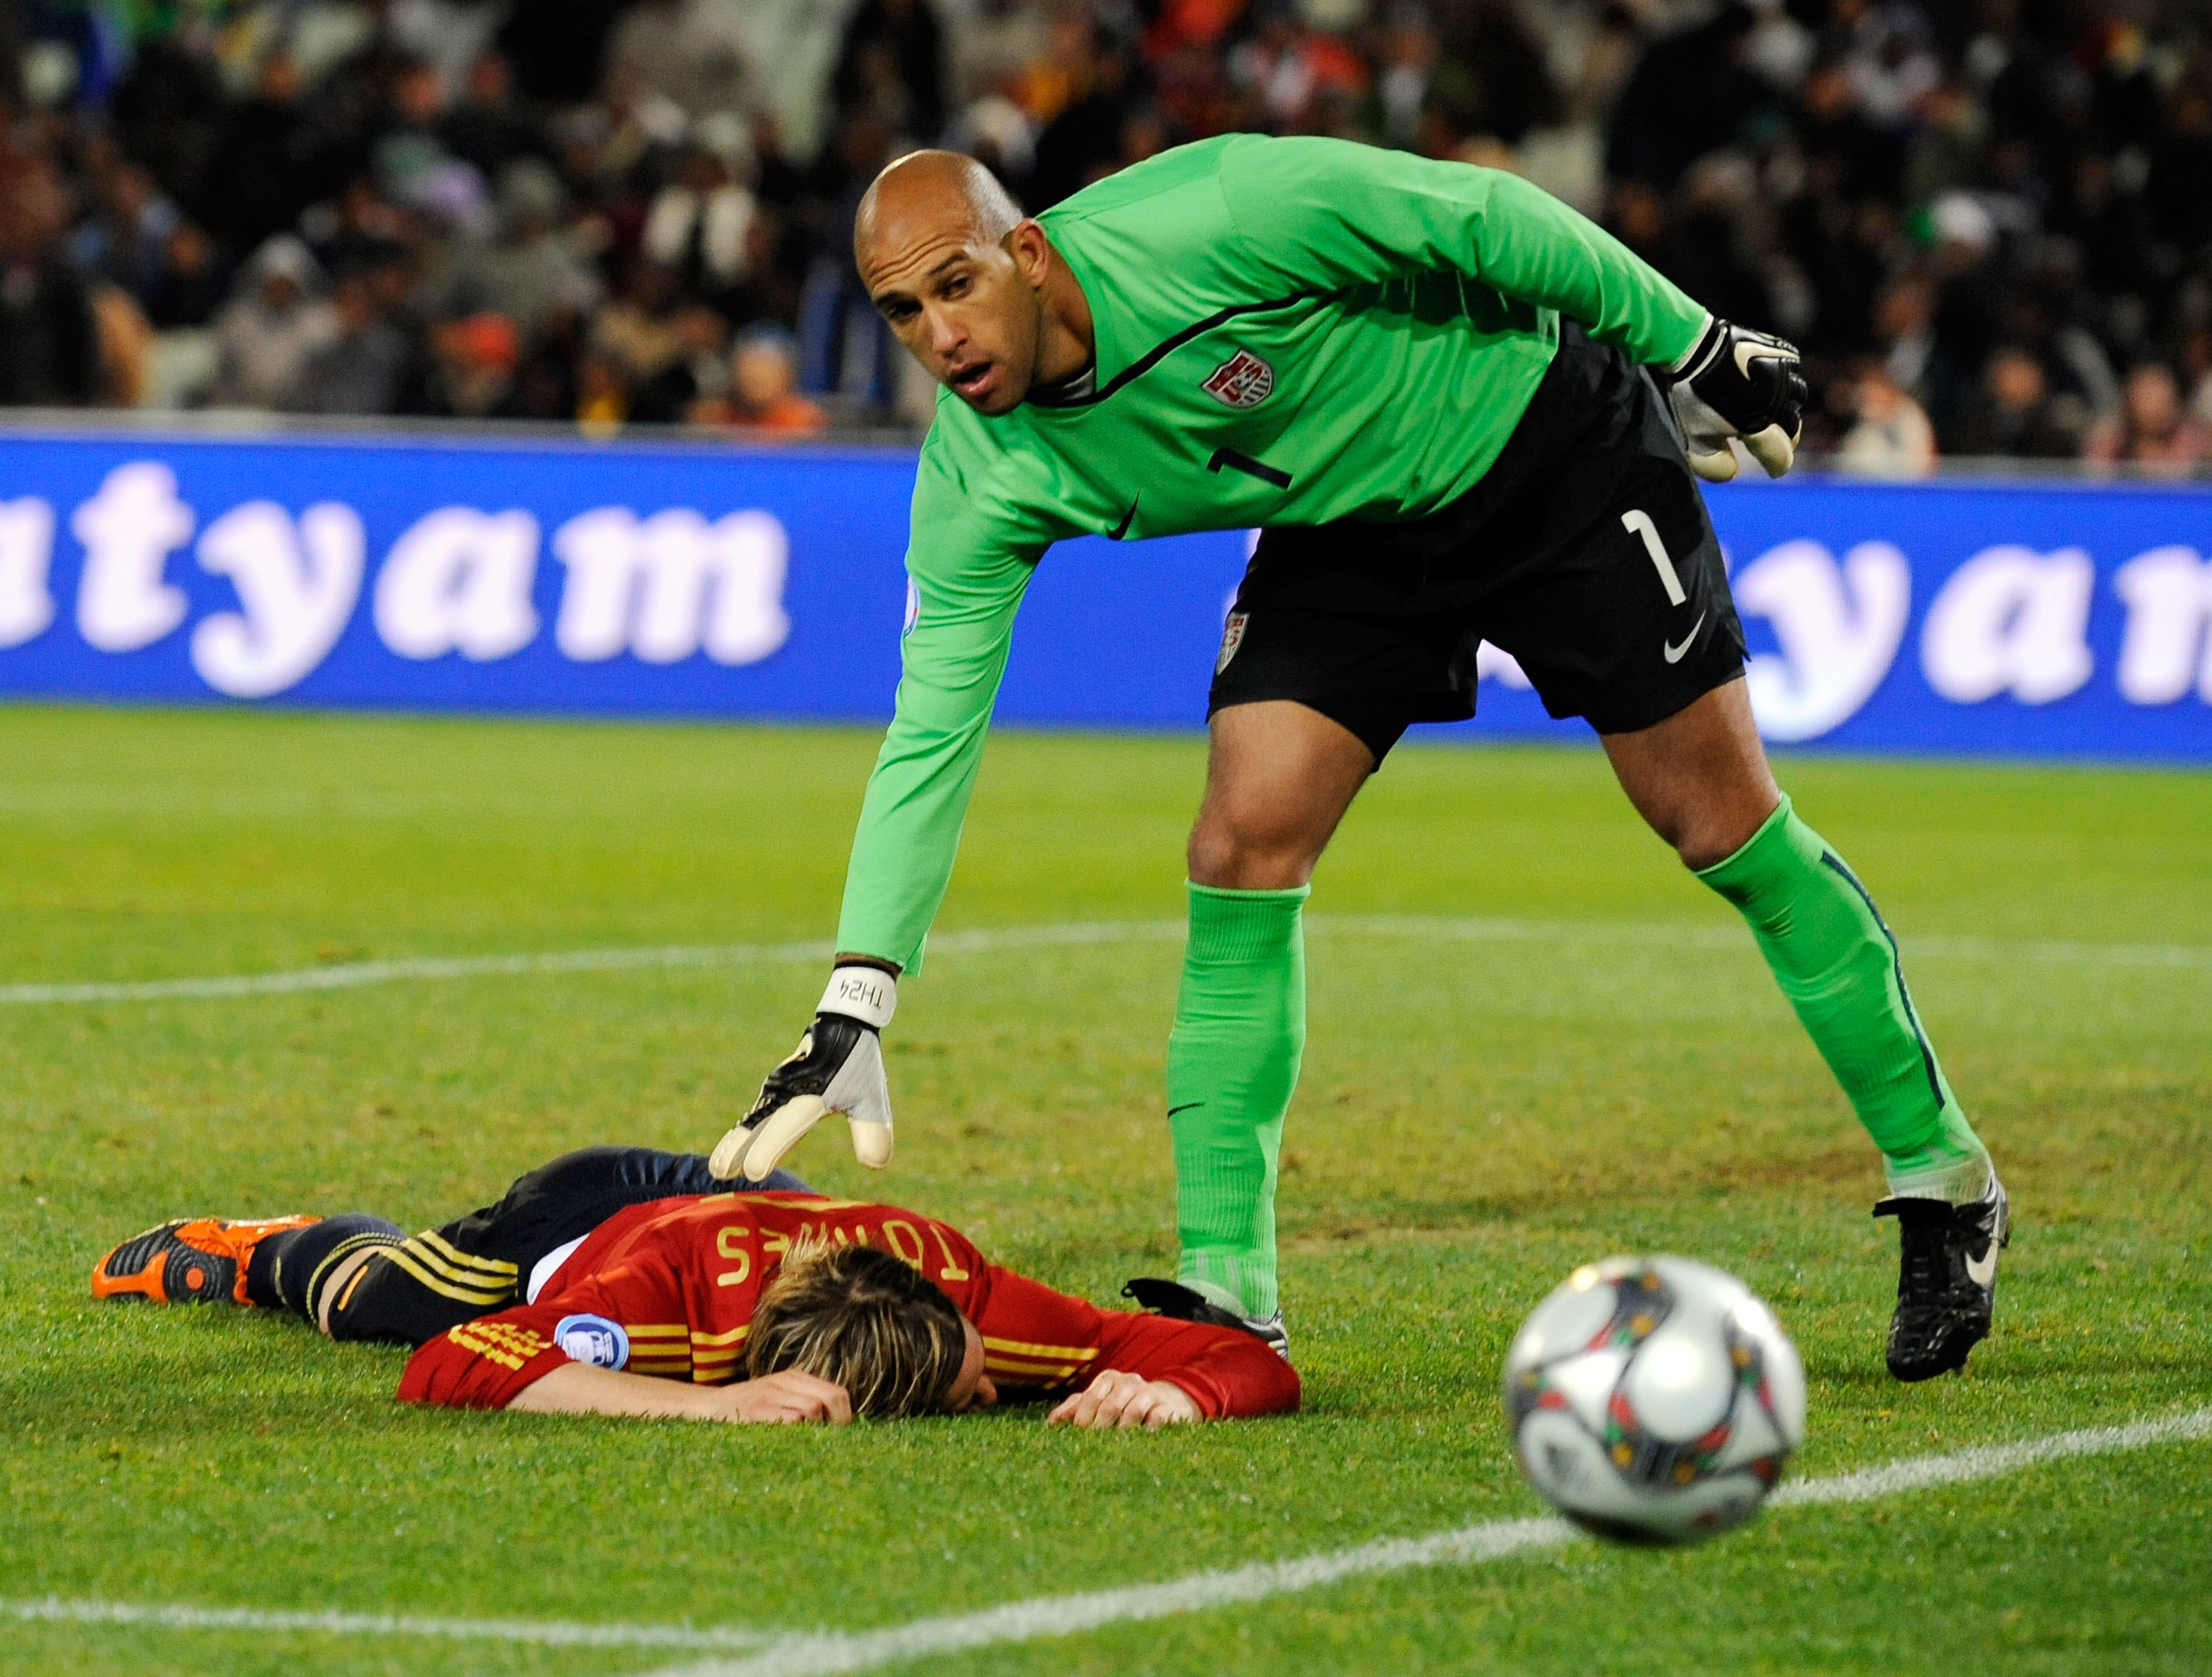 BLOEMFONTEIN, SOUTH AFRICA - JUNE 24:  Fernando Torres of Spain is consoled by goalie Tim Howard #1 of USA during the FIFA Confederations Cup Semi Final match between Spain and USA at the Free State Stadium on June 24, 2009 in Bloemfontein, South Africa.